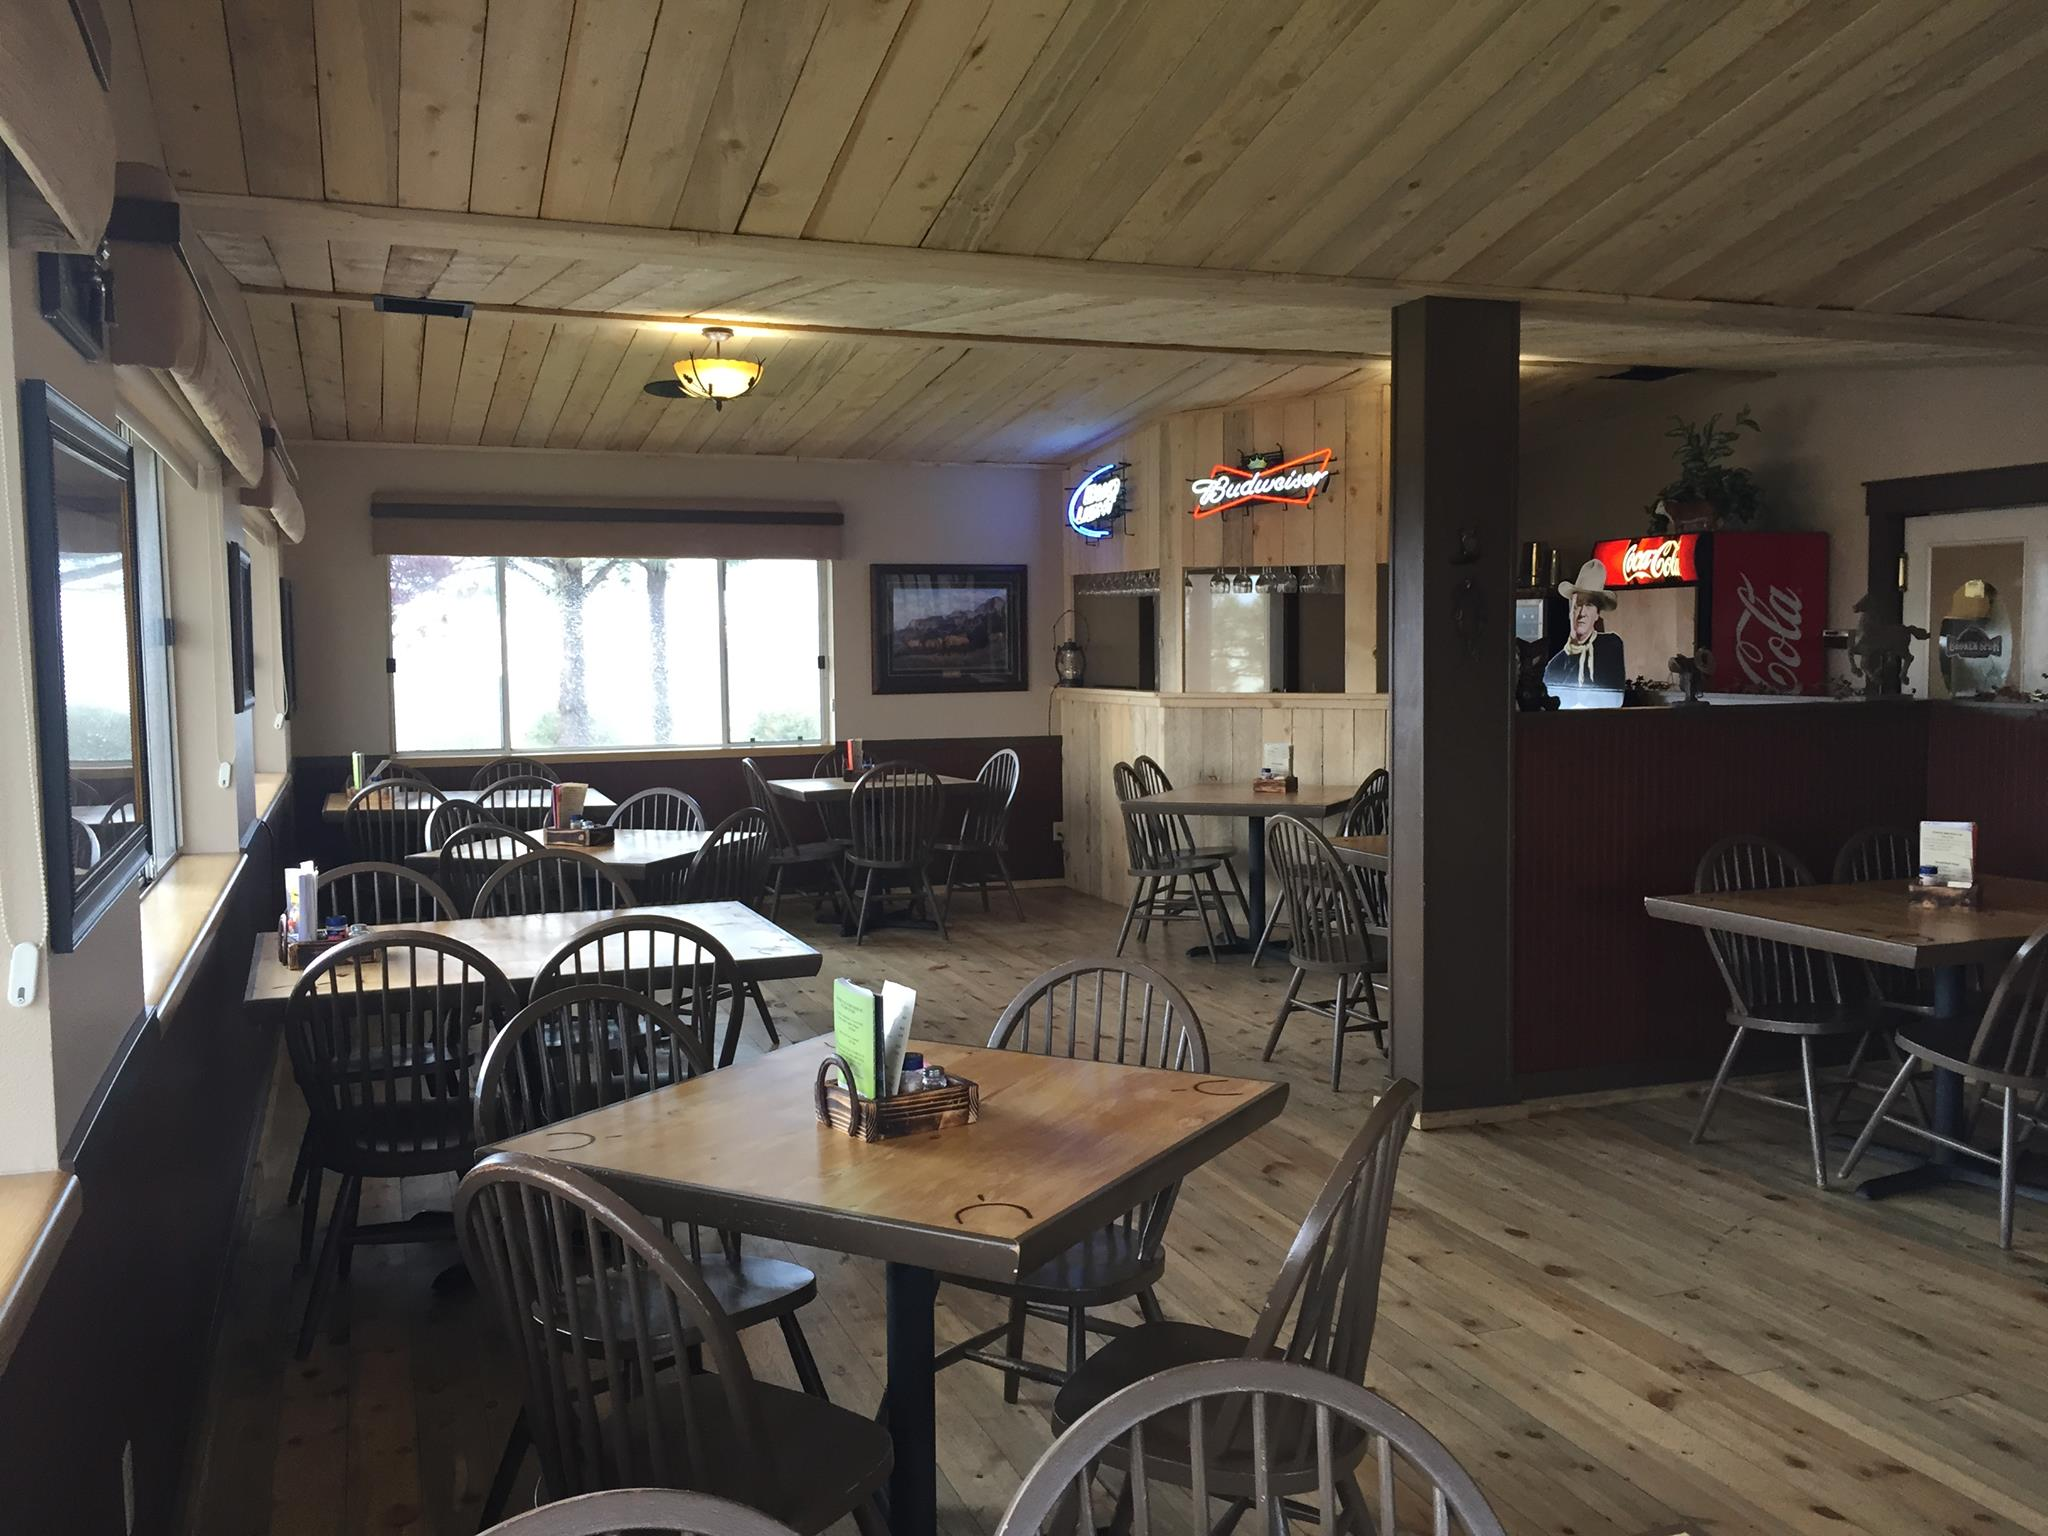 The Broken Spur Inn & Steakhouse